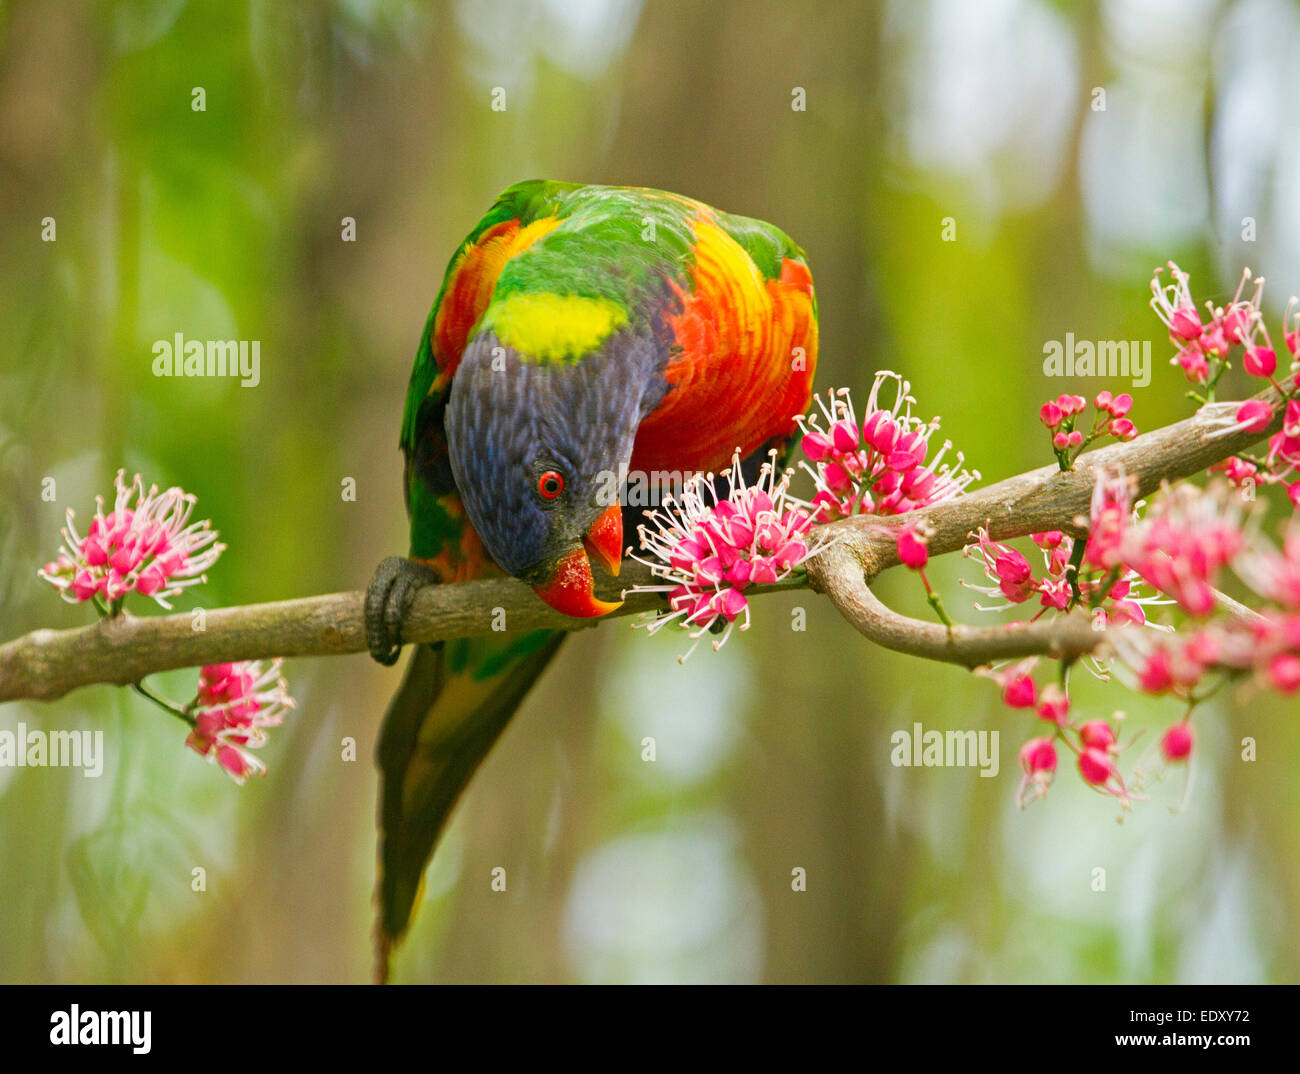 Brightly coloured rainbow lorikeet, Australian parrot in the wild feeding on clusters of pink flowers of native Stock Photo